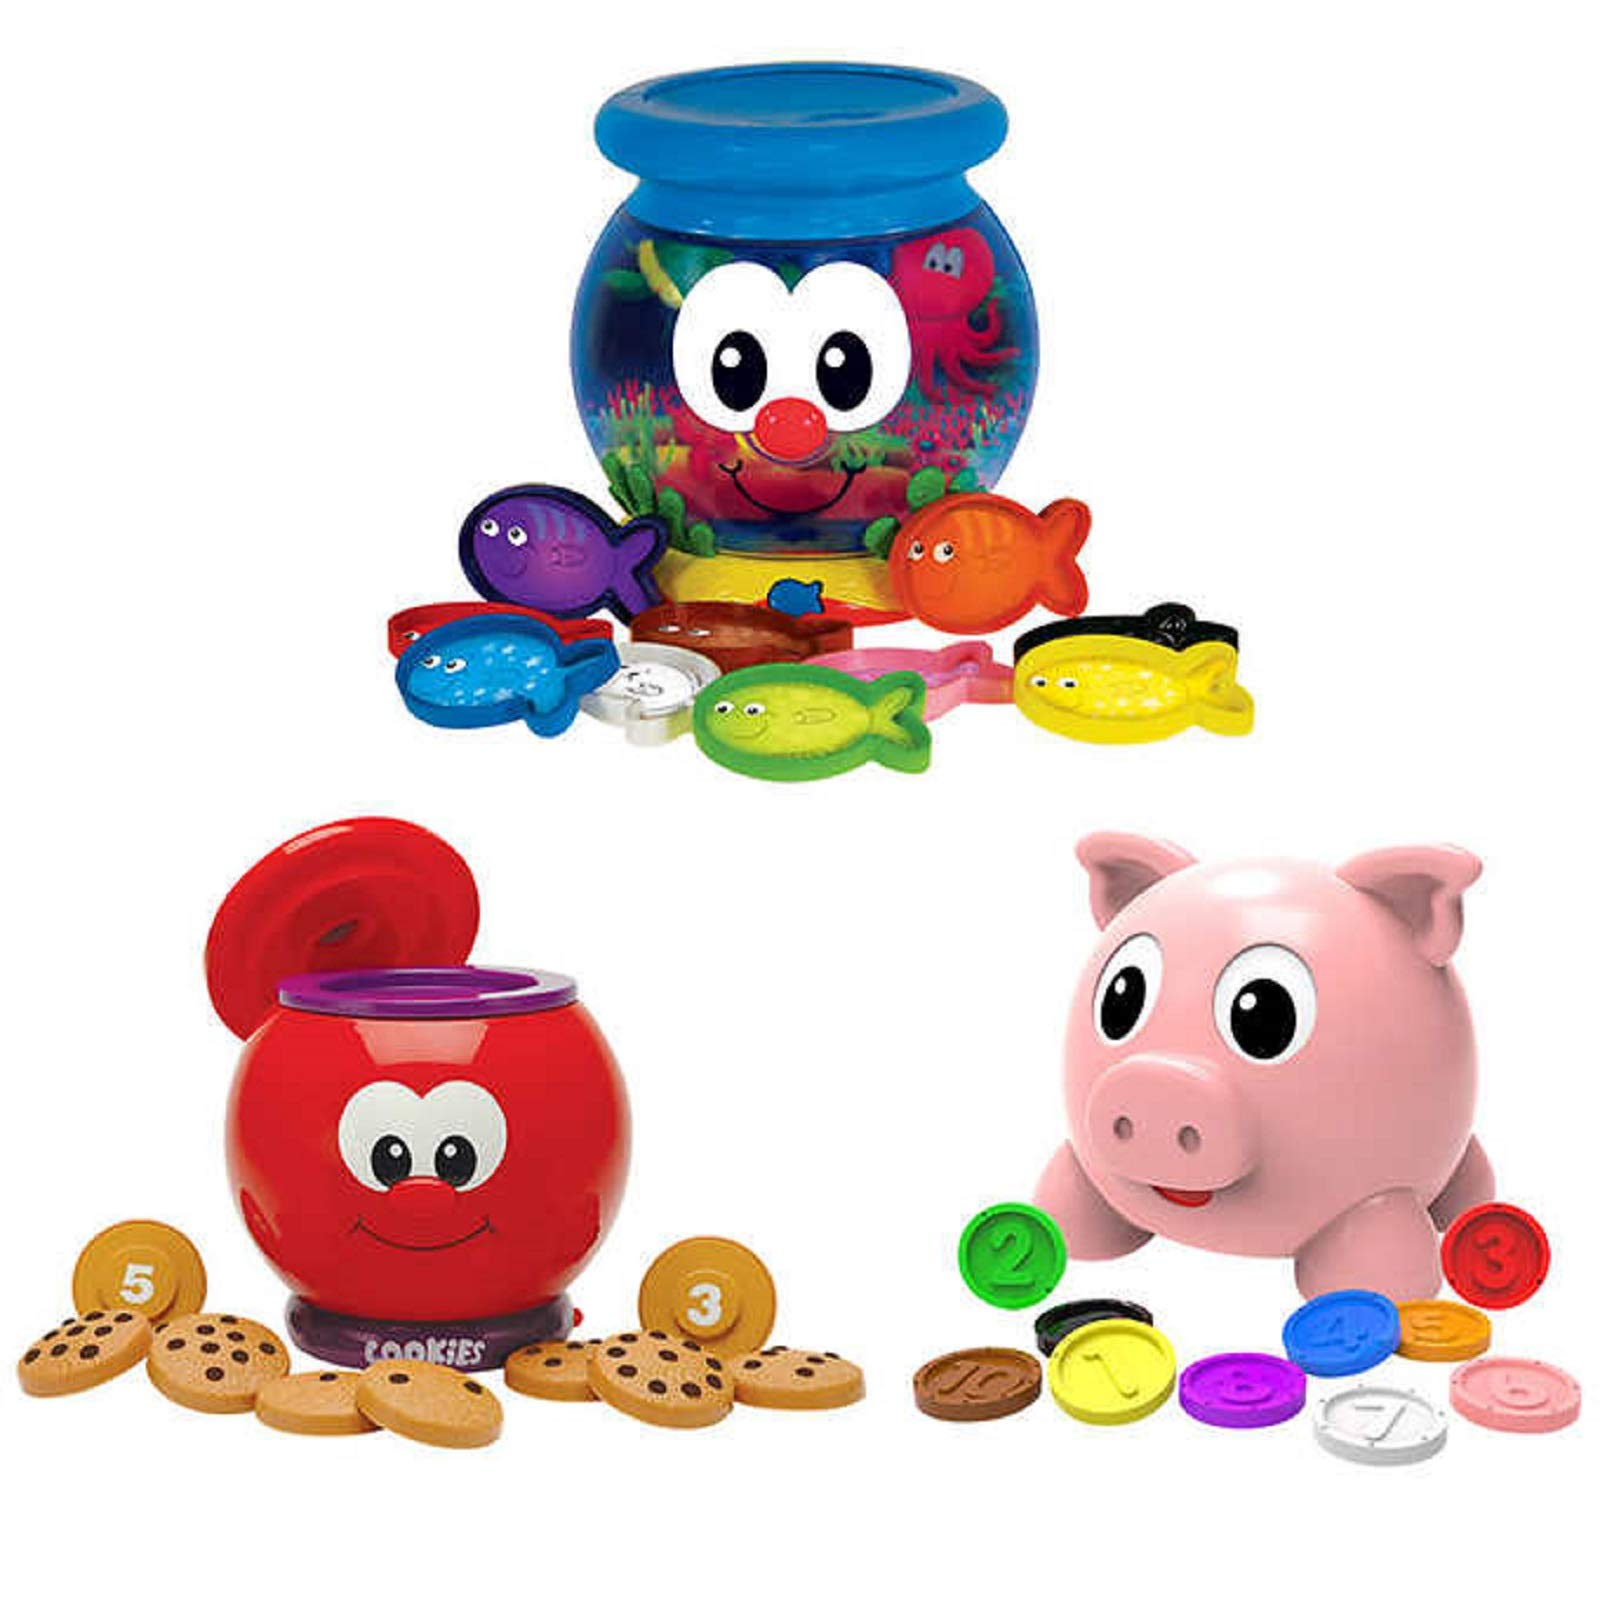 The Learning Journey: Learn with Me Gift Set, Includes Numbers and Colors Pig E Bank,Count and Learn Cookie Jar, and Color Fun Fish Bowl, Batteries Included (3-Pack Combo) by The Learning Journey: (Image #1)